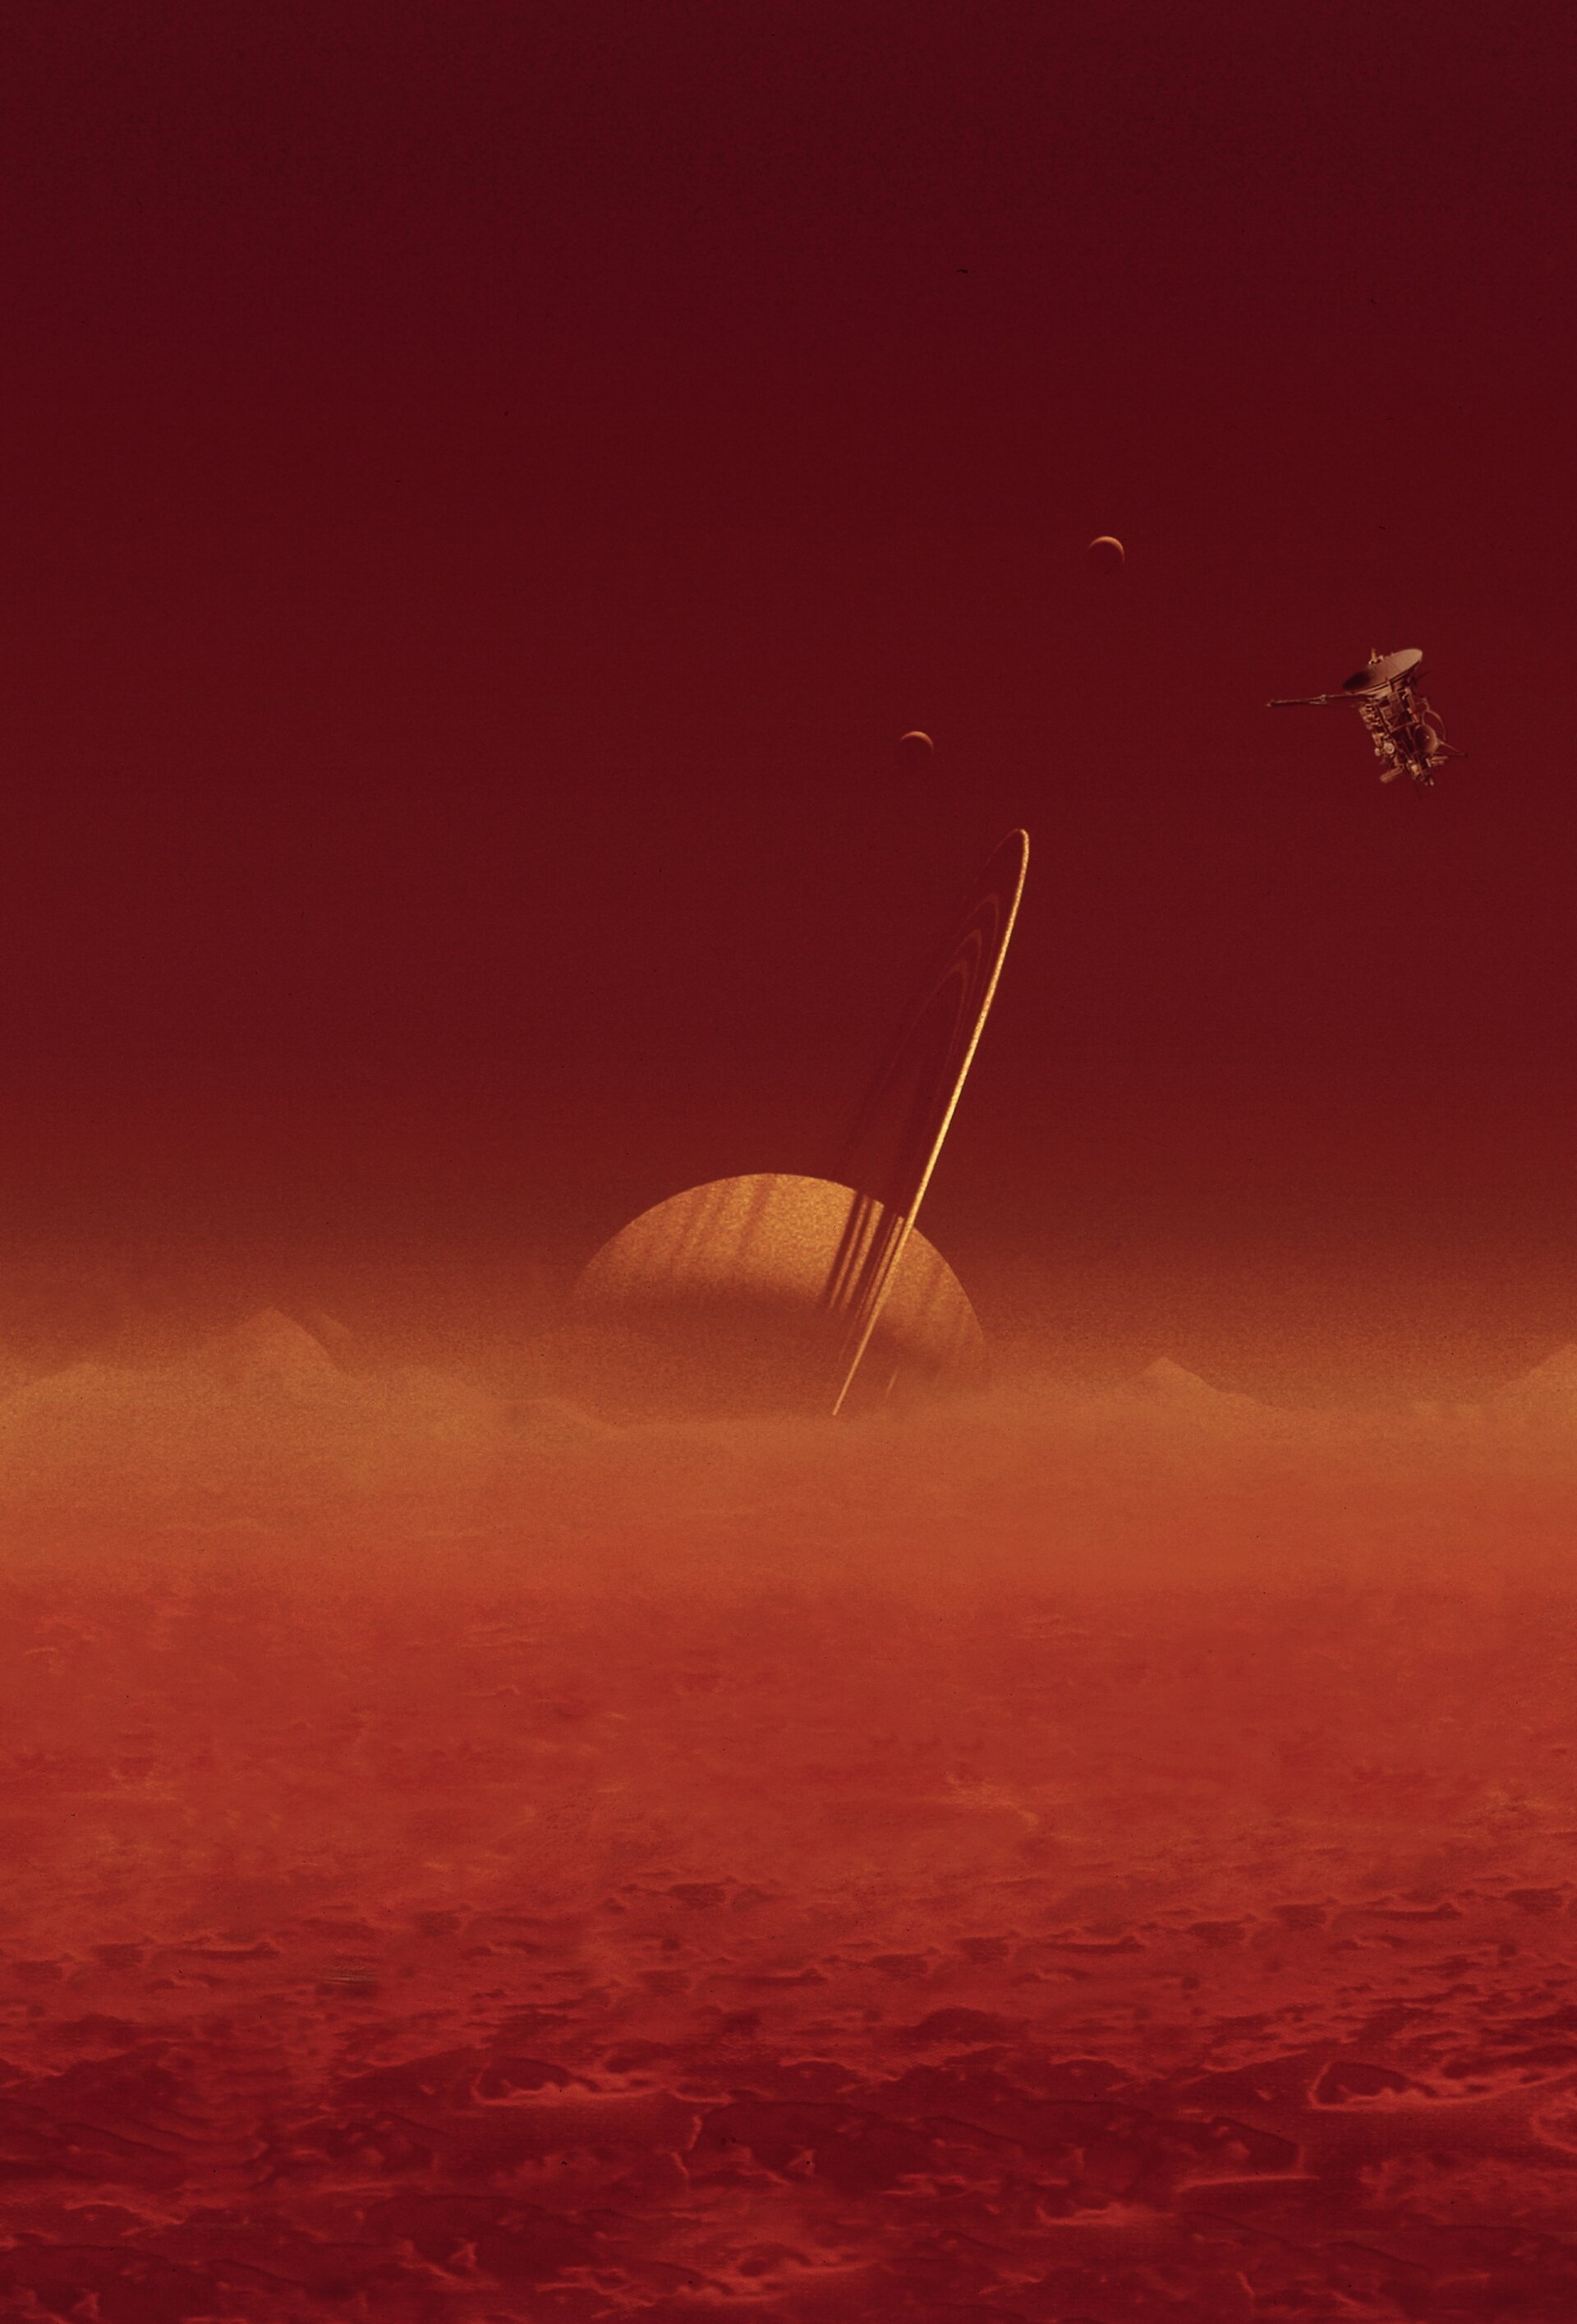 Saturn, as seen from Titan, with Cassini just visible